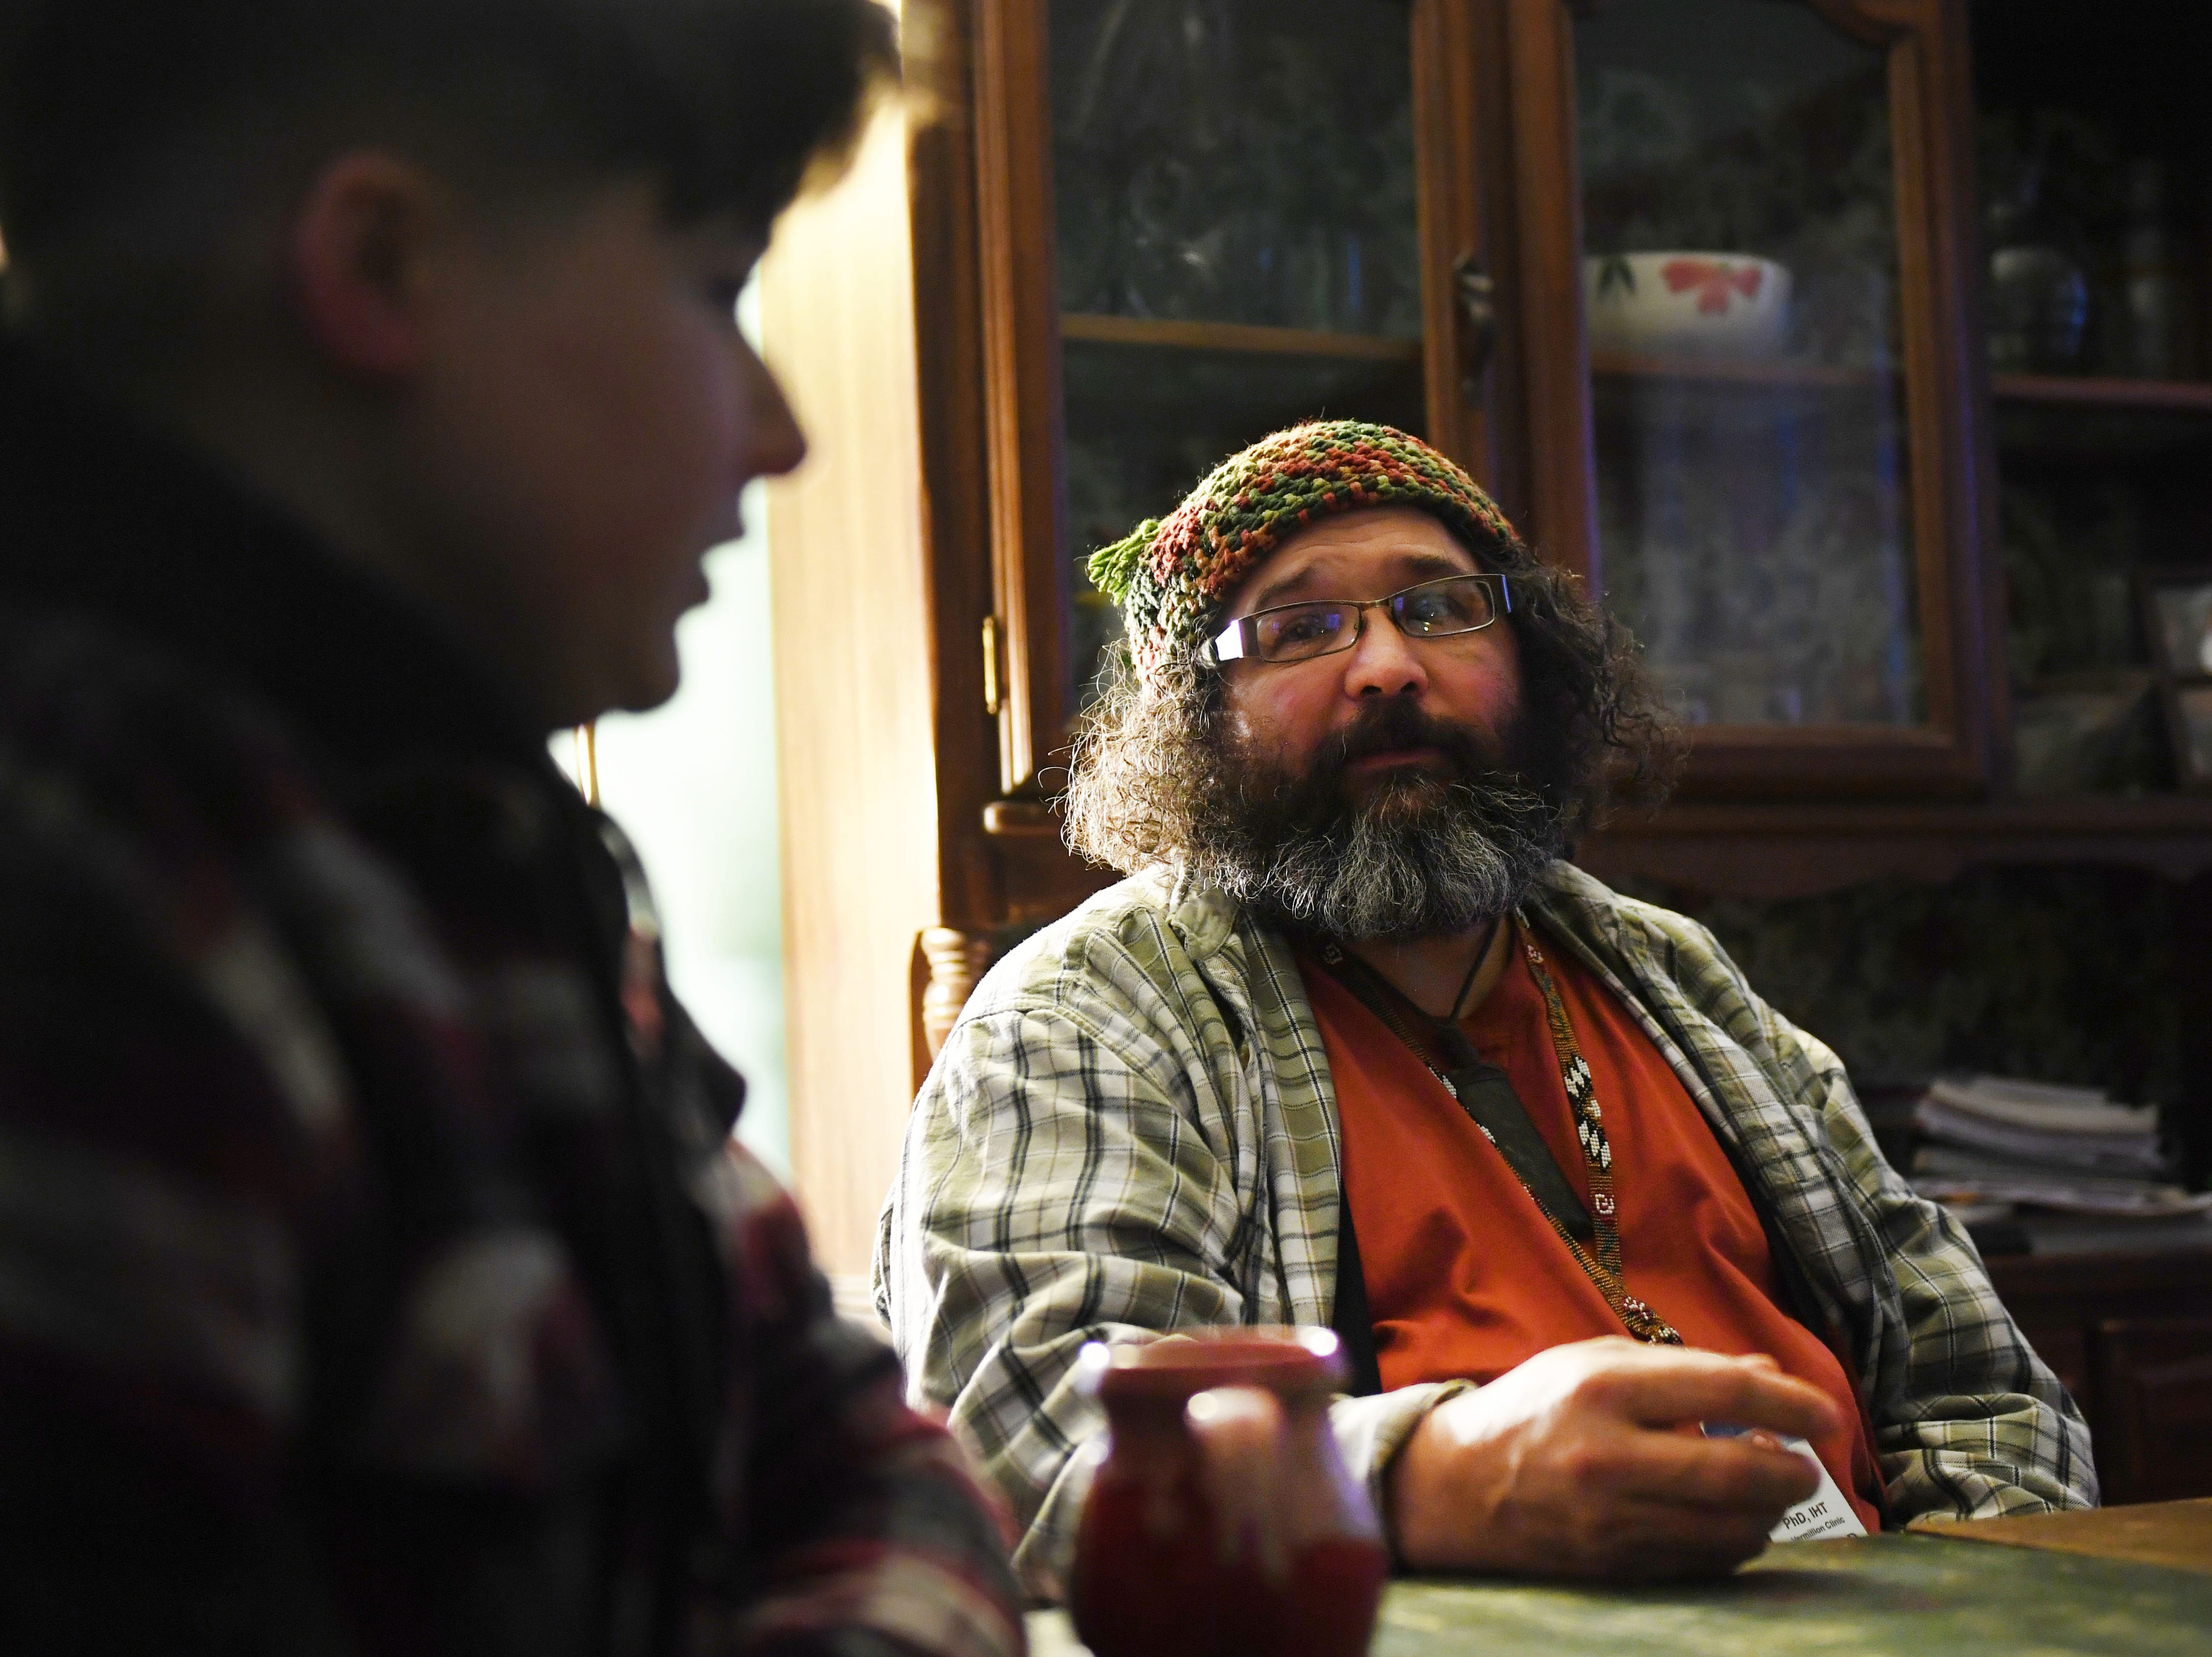 Mark Daniels, Dylan Daniels' dad, talks about how he just wants his kids to live fulfilled lives no matter what that entails Monday, Feb. 25, in Vermillion.